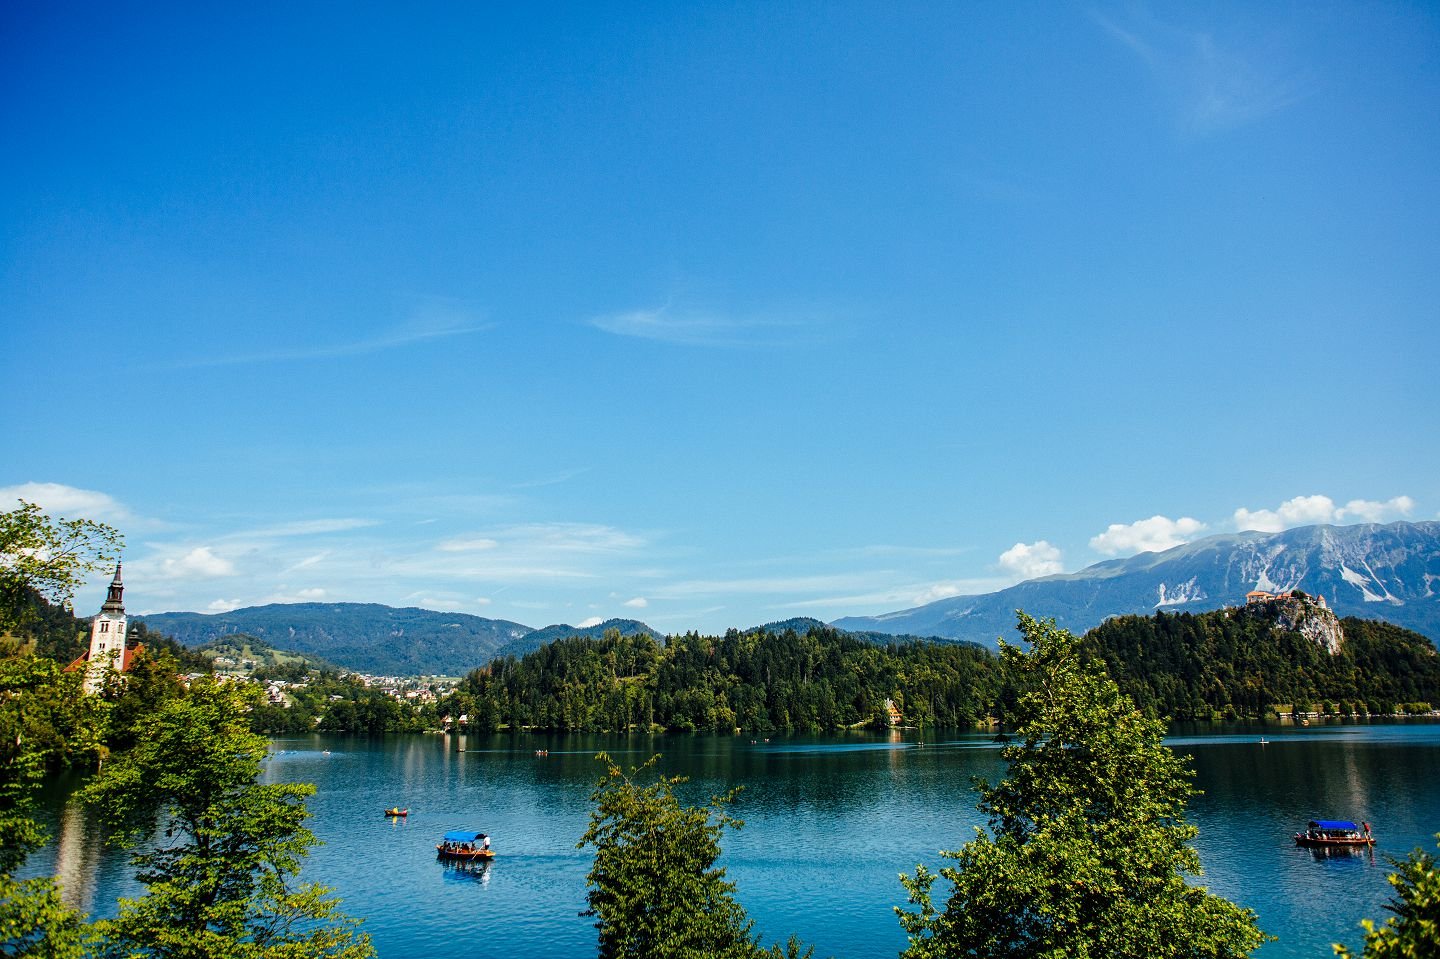 slovenia-lake-bled-wedding-lucy-ian (2)